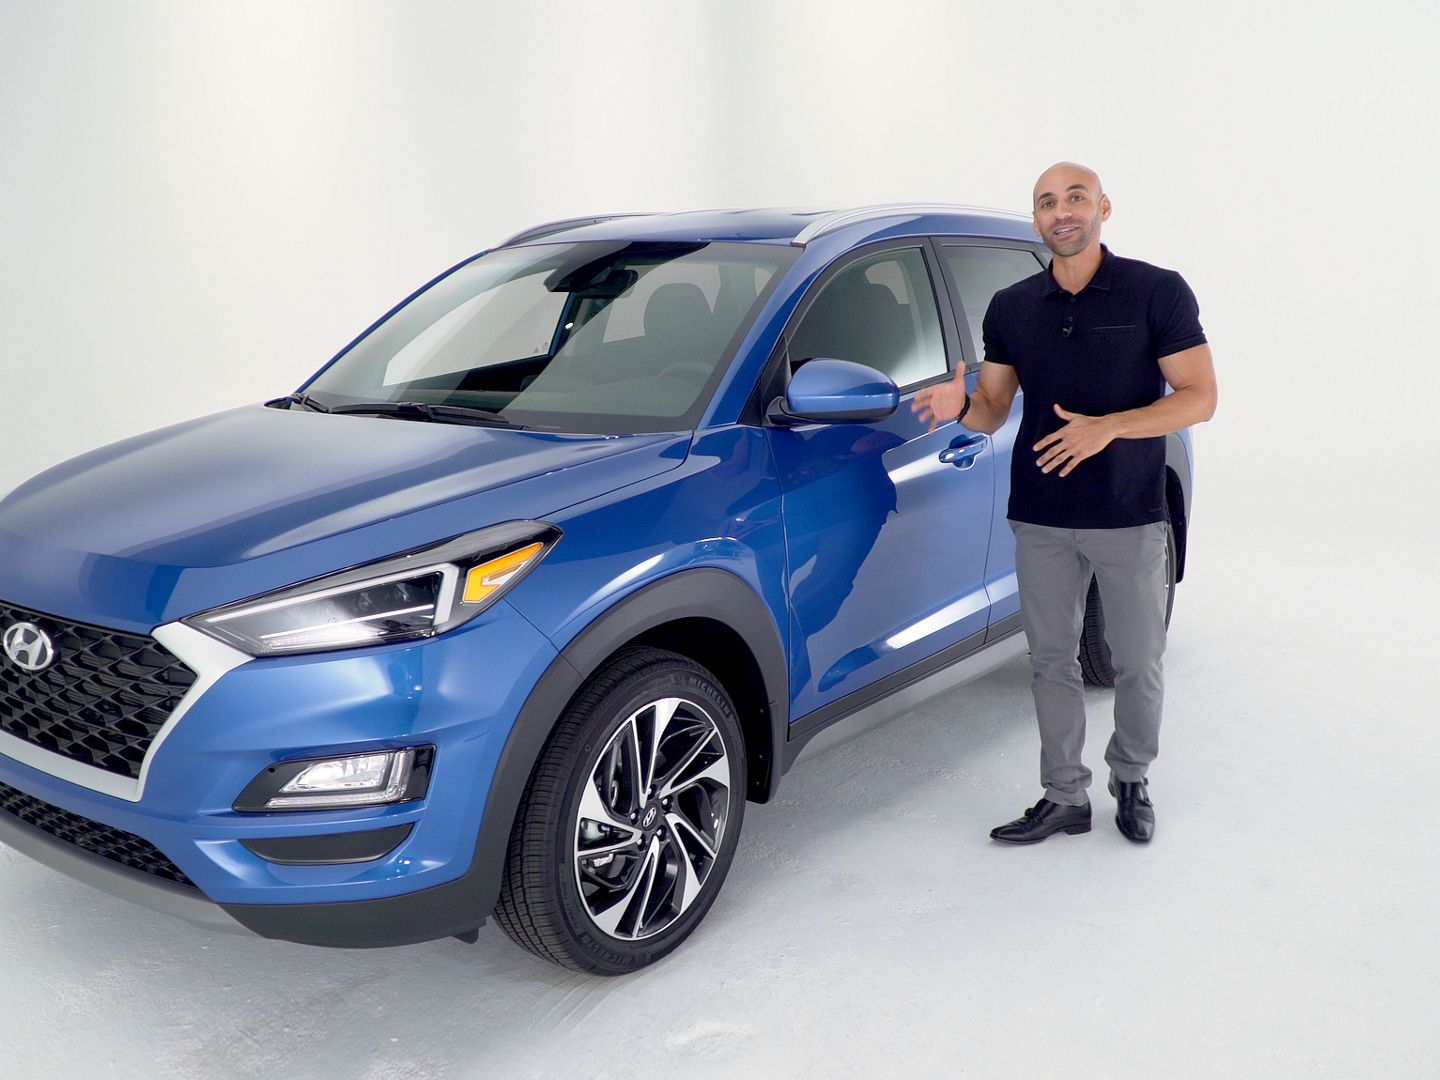 Hyundai USA | The 2020 Hyundai Tucson